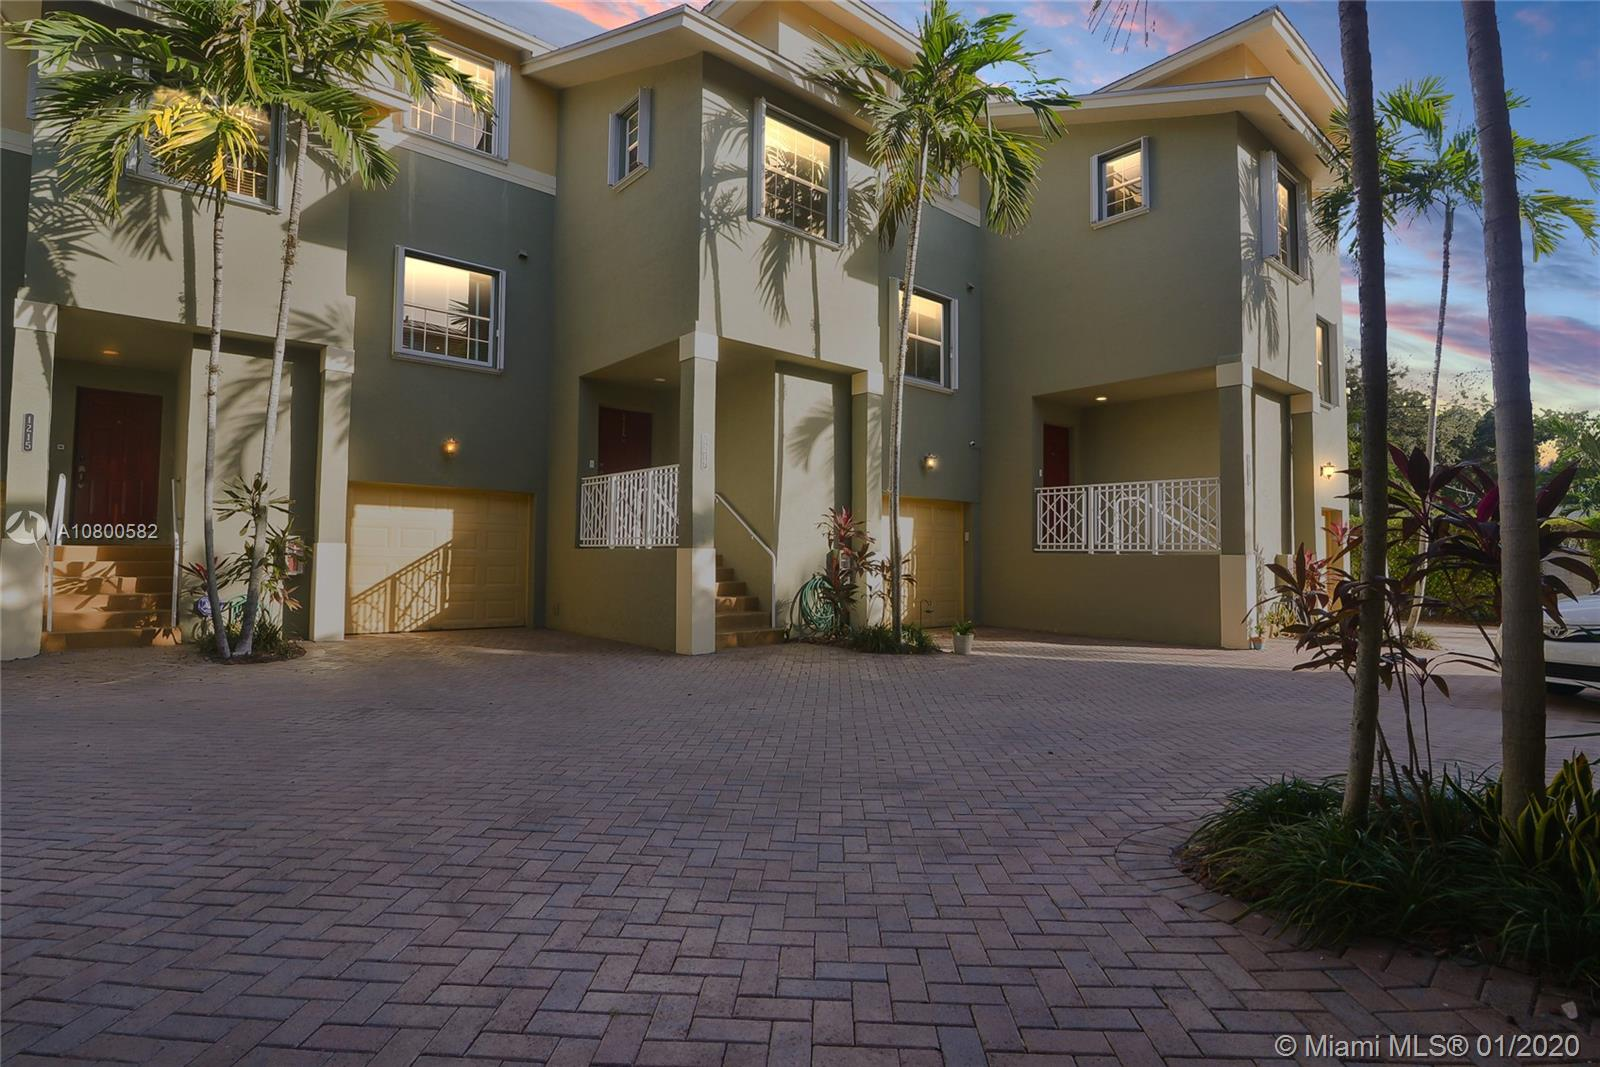 1215 SW 4th St - Fort Lauderdale, Florida